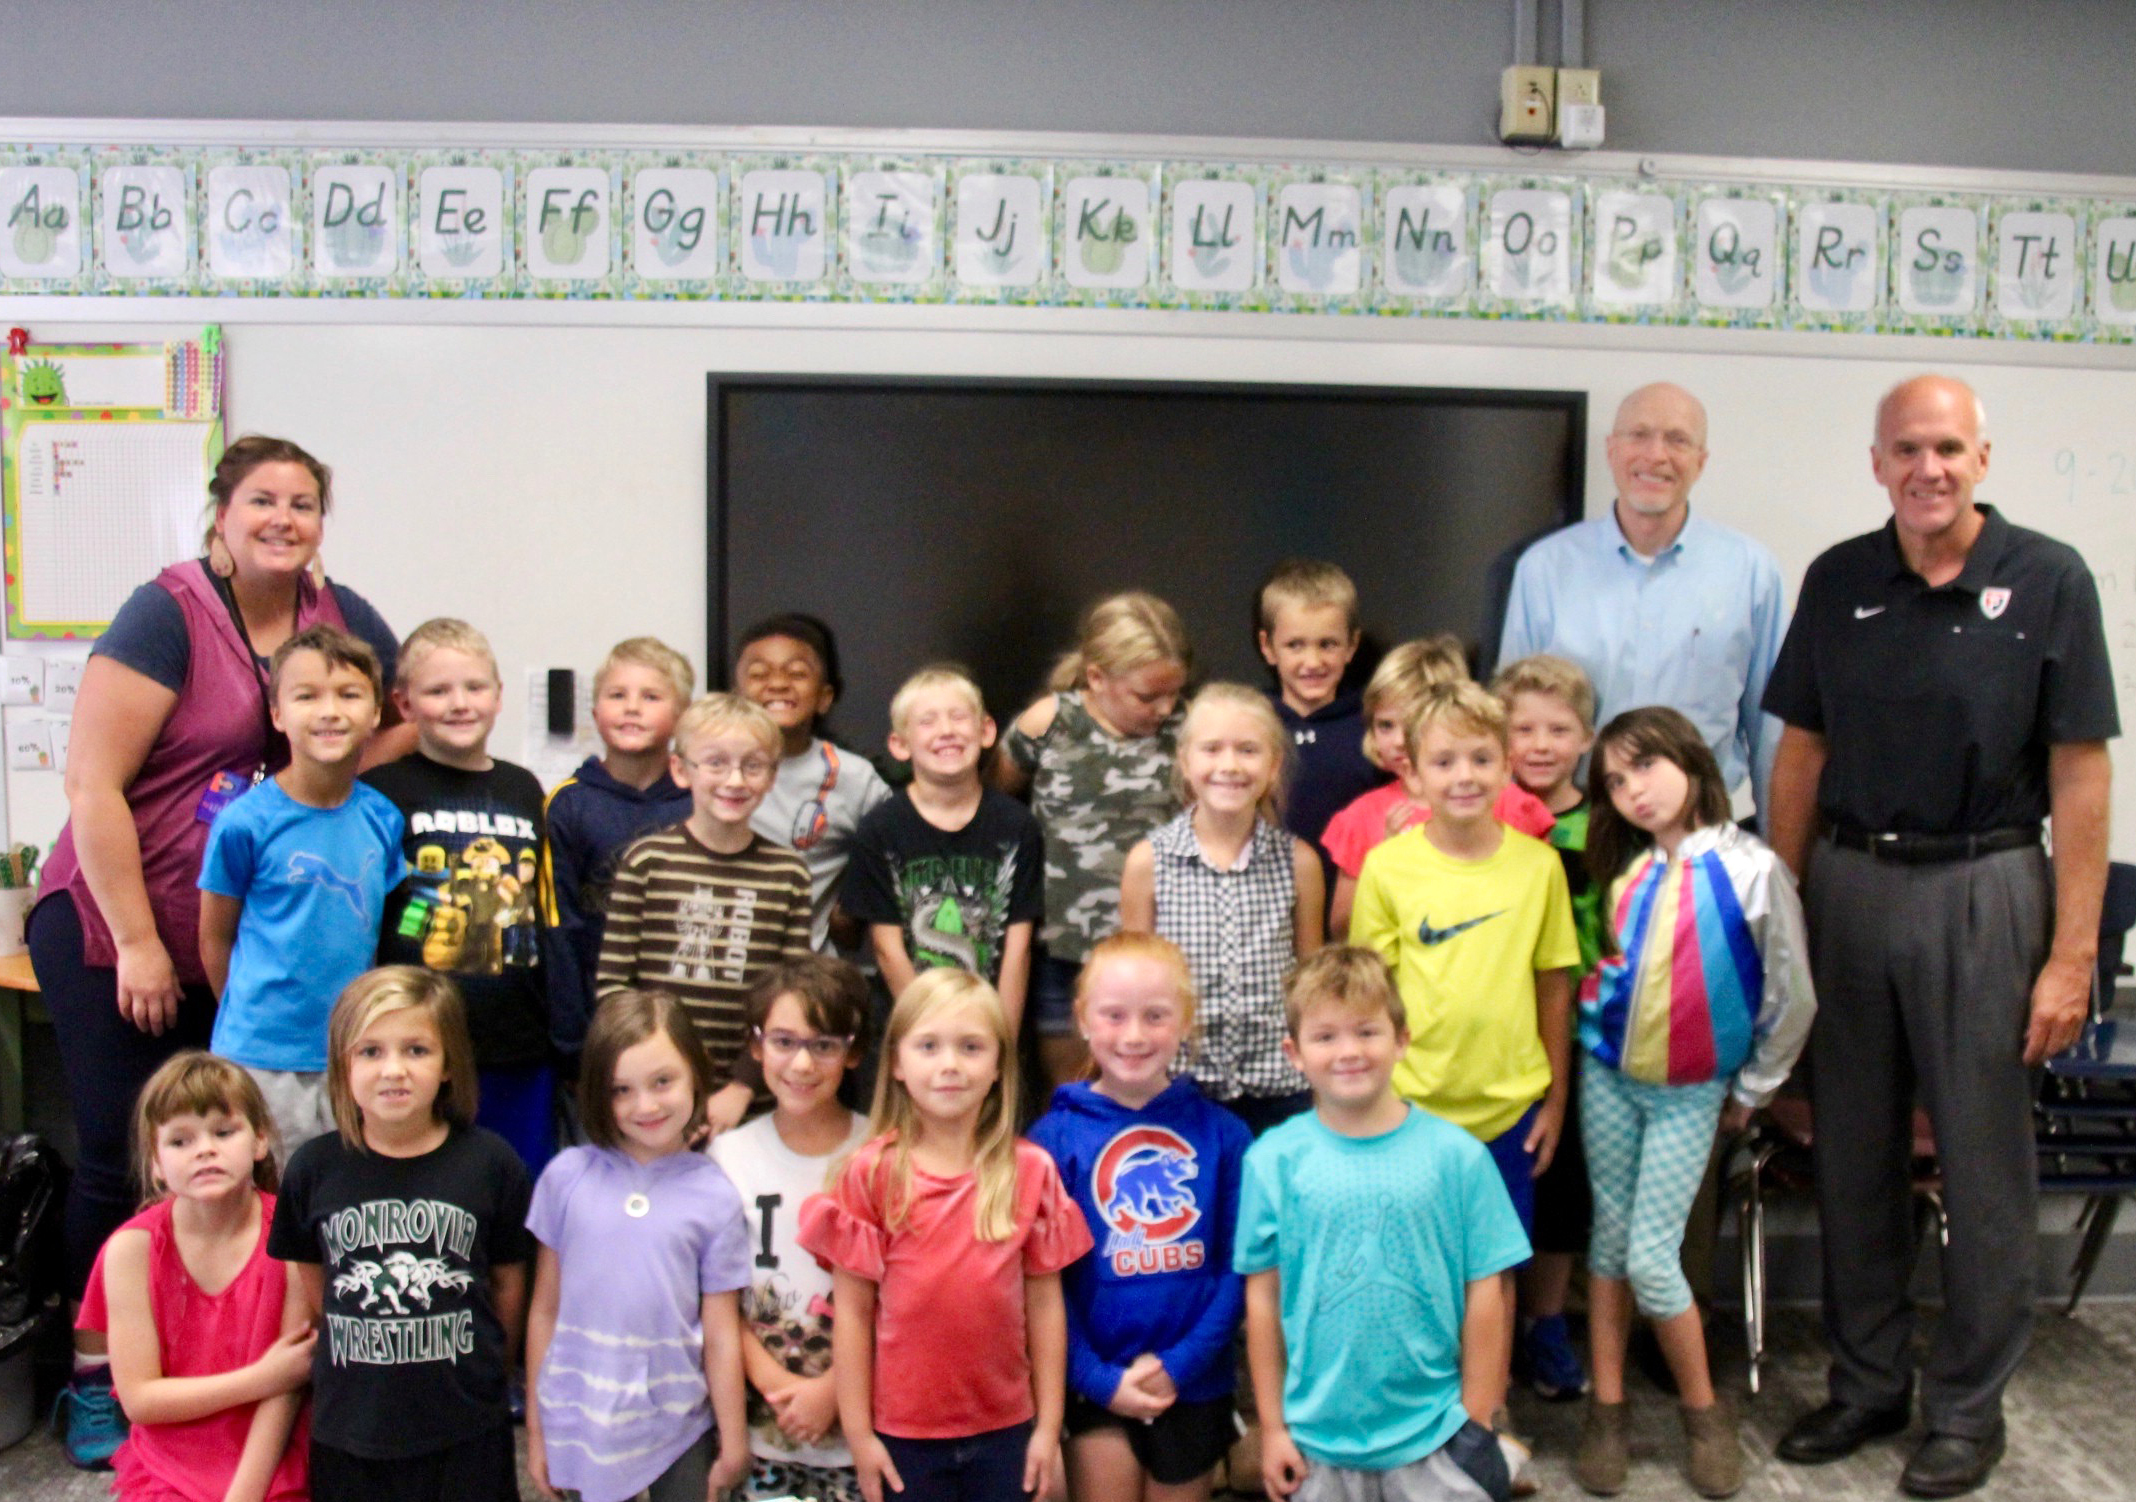 Mr. Olinger and Mr. Helmuth pose with Mrs. Craney's class after telling them about the 2019 National Blue Ribbon School of Excellence Award